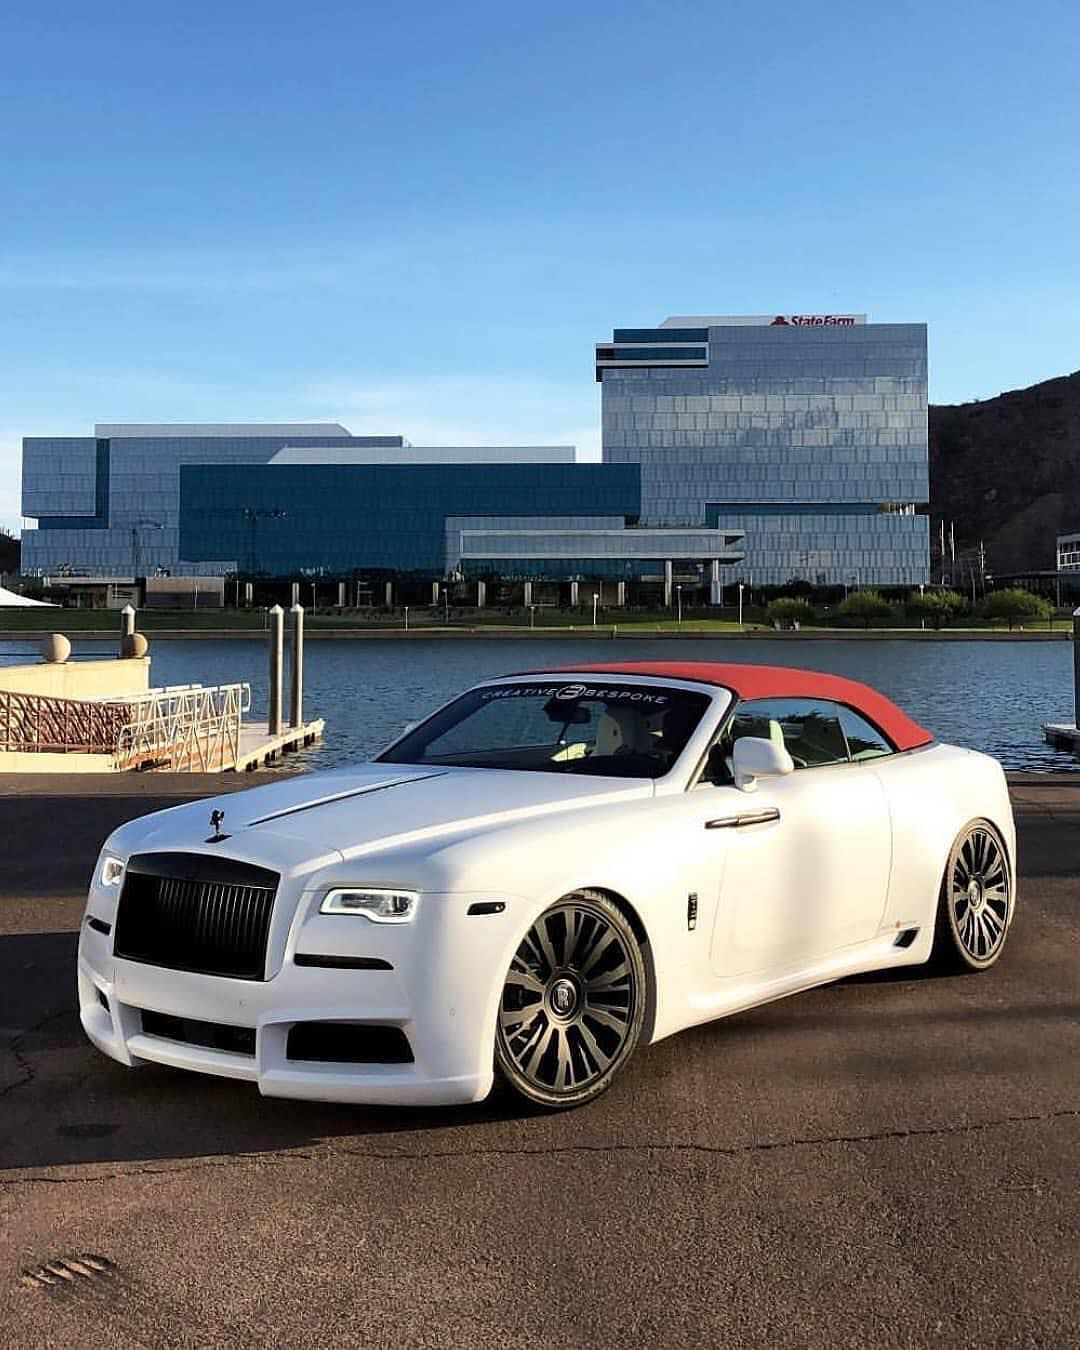 Image May Contain Car And Outdoor Luxury Cars Rolls Royce Rolls Royce Wraith Rolls Royce